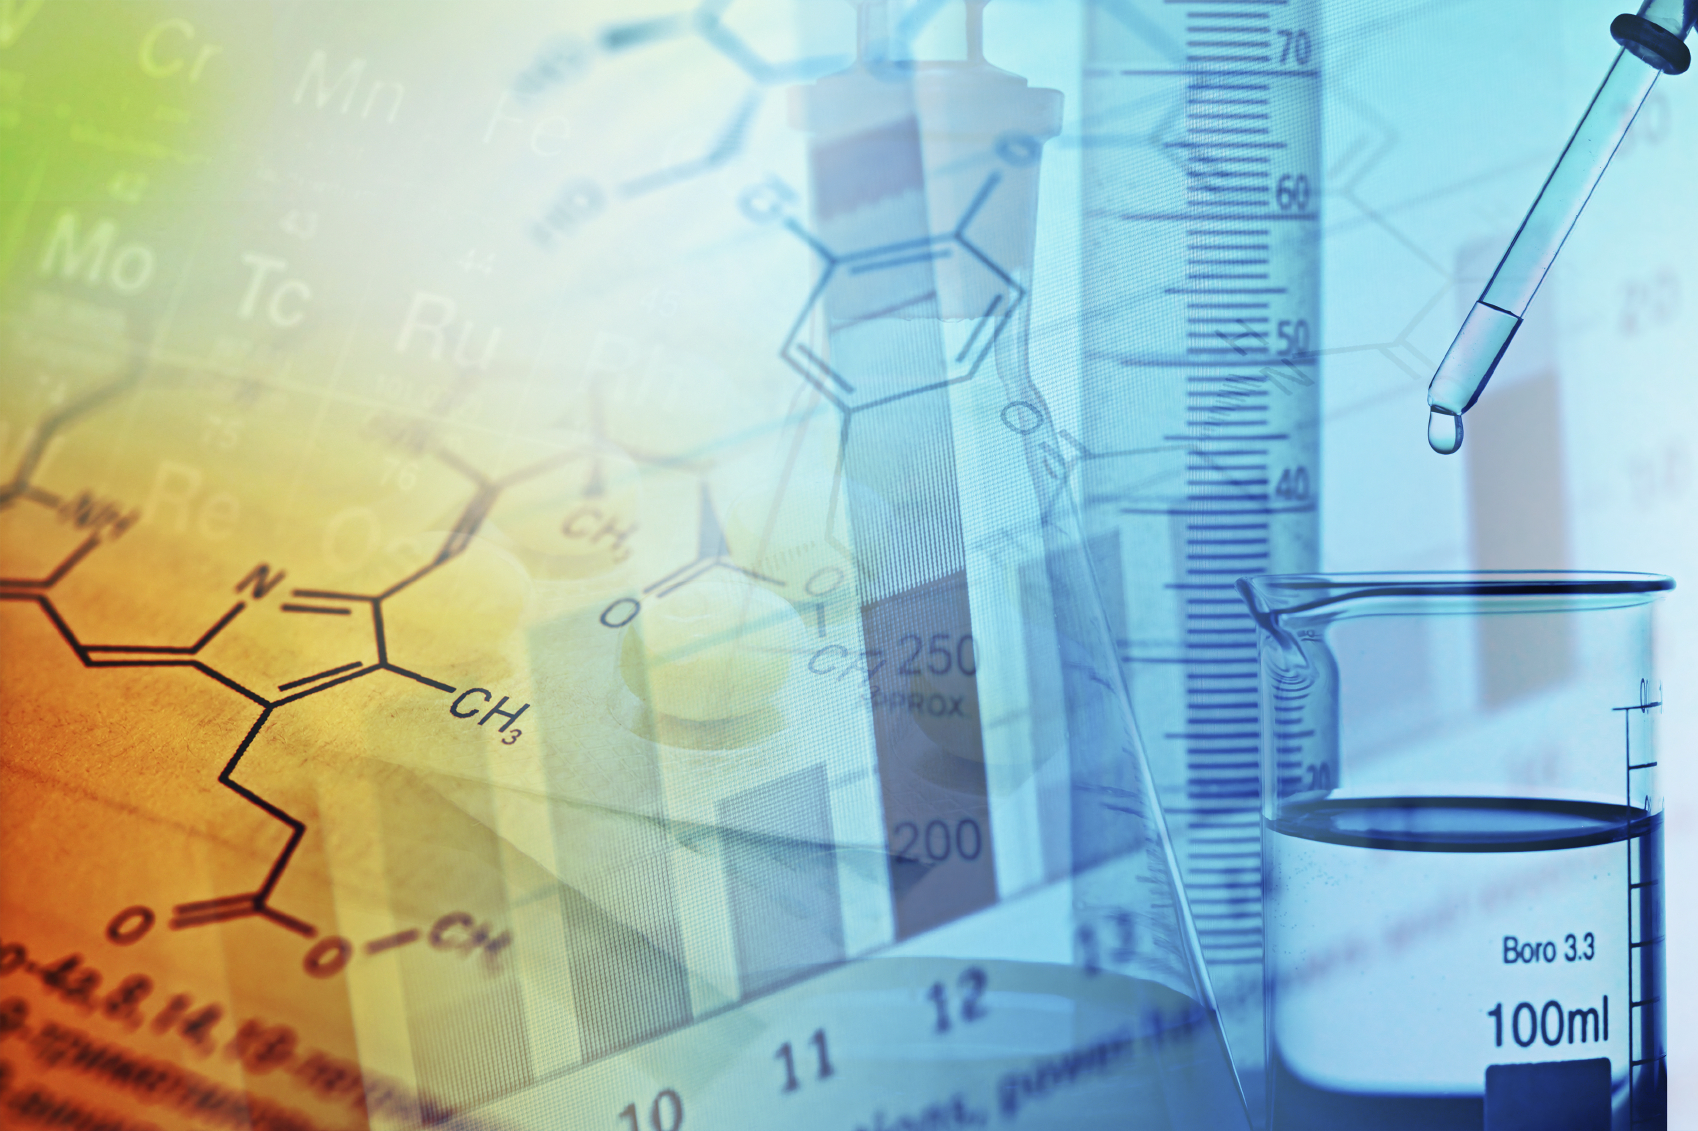 Meeting the requirements of a chemist